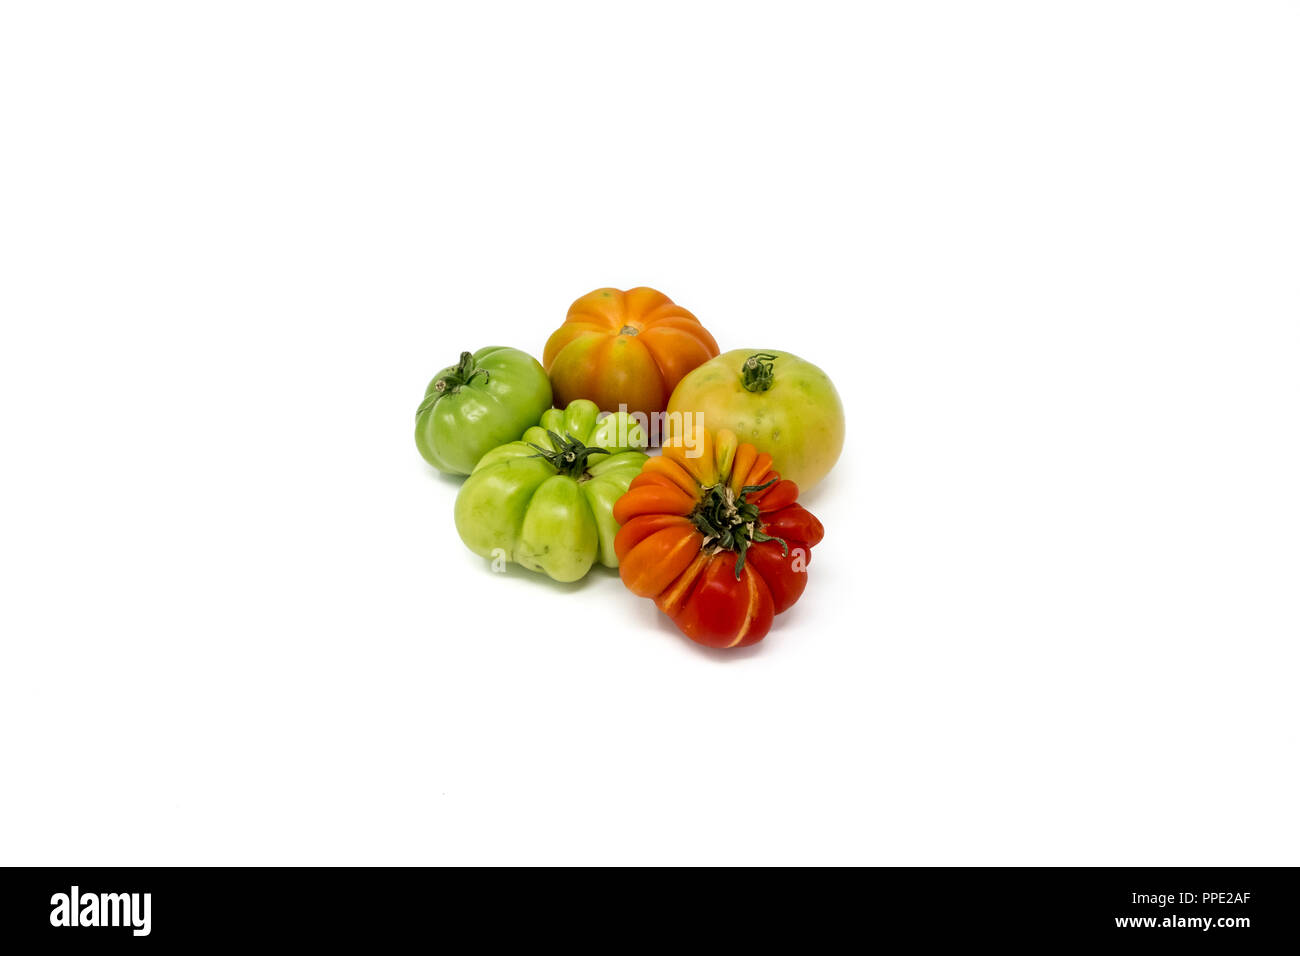 A variety of imperfect, ripening heirloom or heritage tomatoes in a studio setting Stock Photo